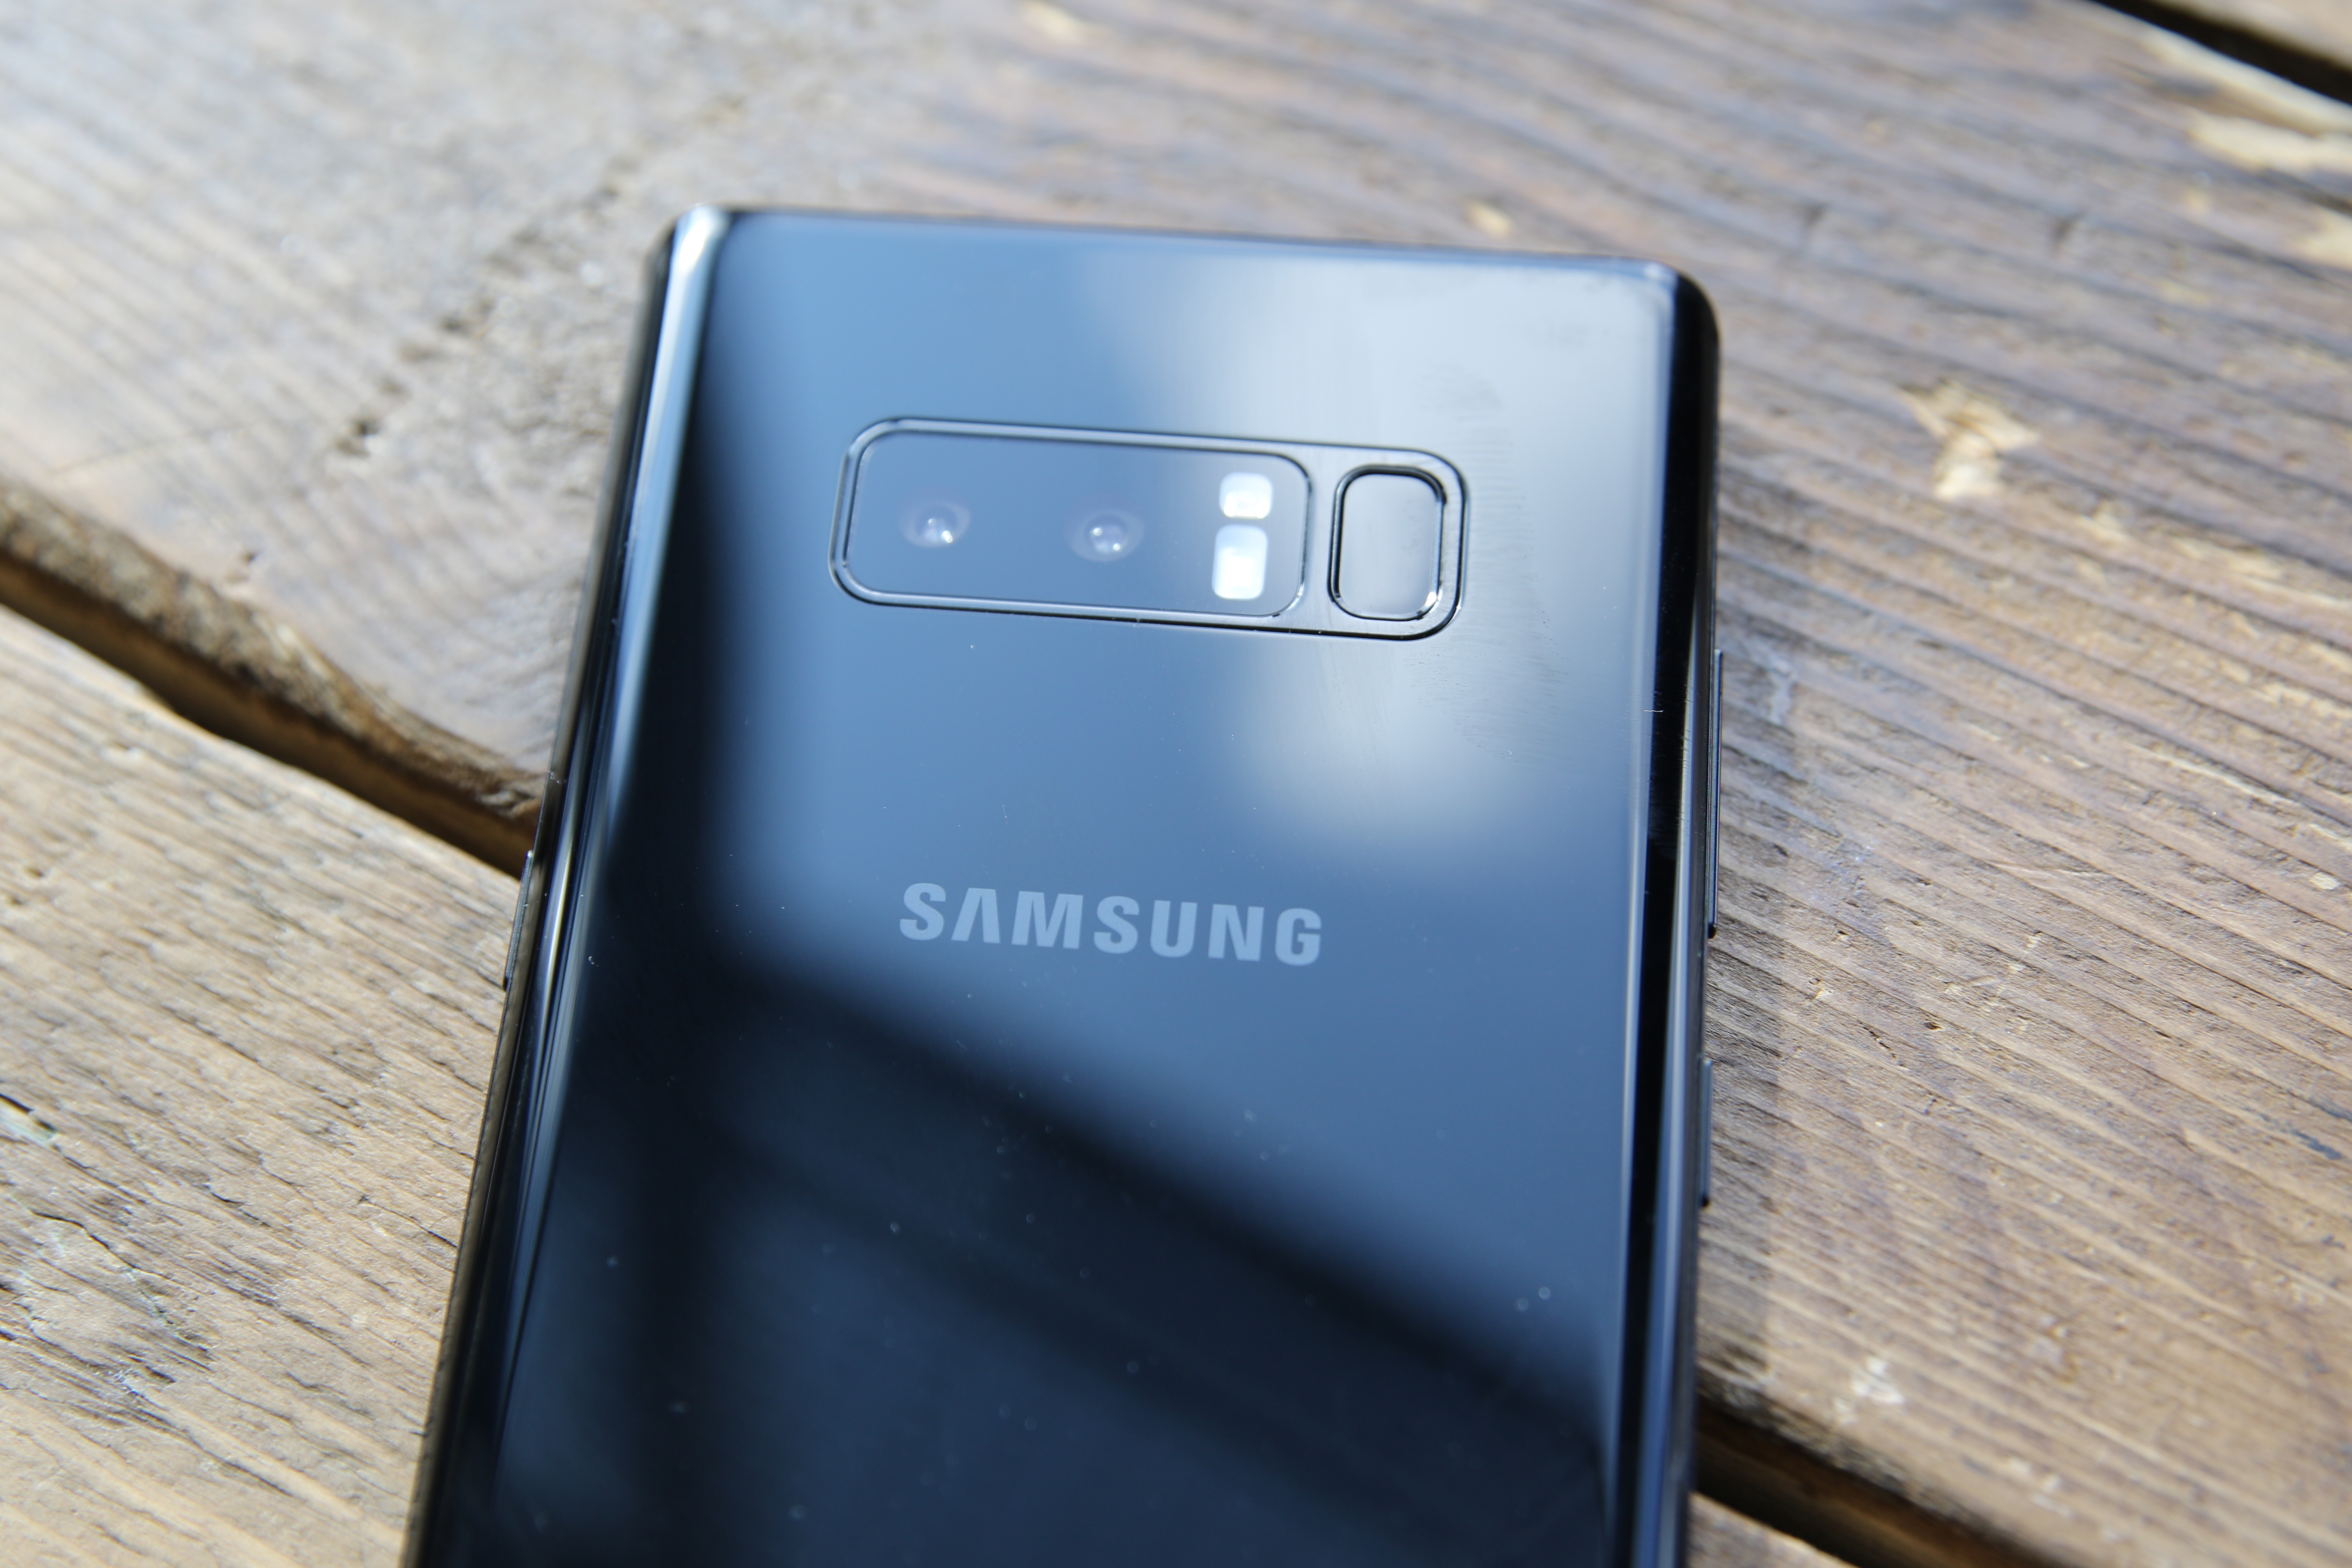 Samsung And LG Proudly Confirm They Don't Slow Down Old Phones Like Apple